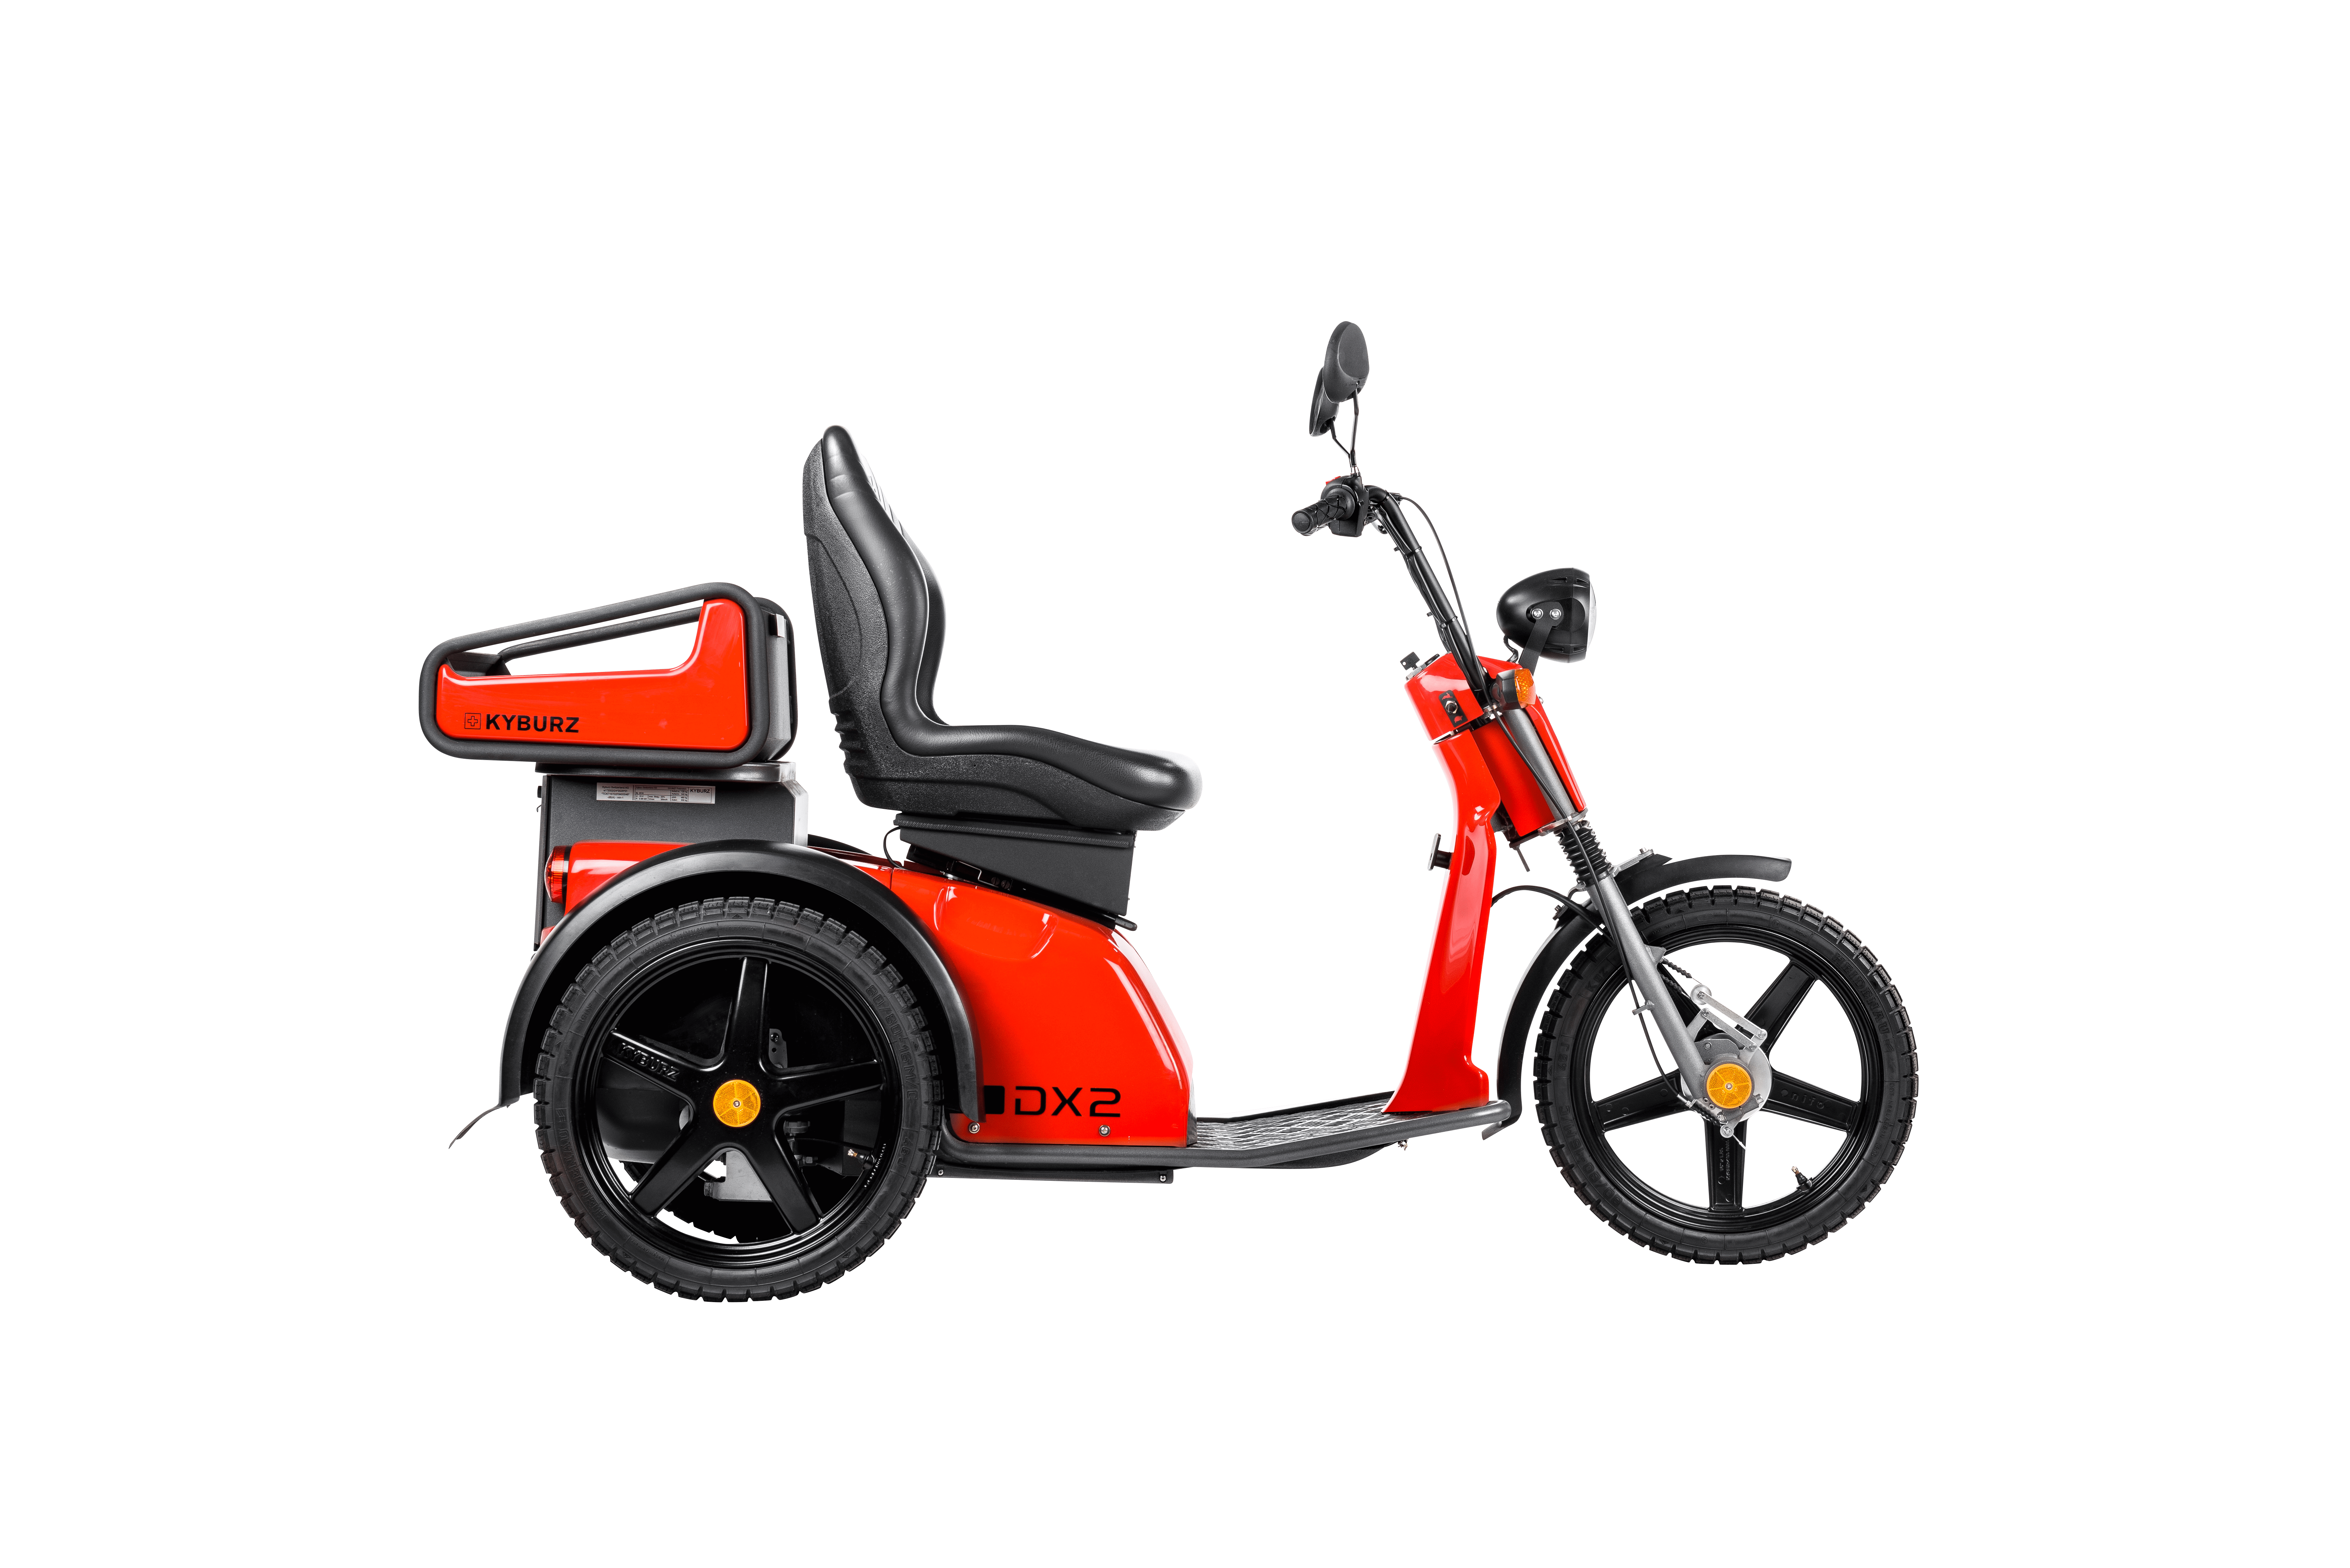 Driewielscooter